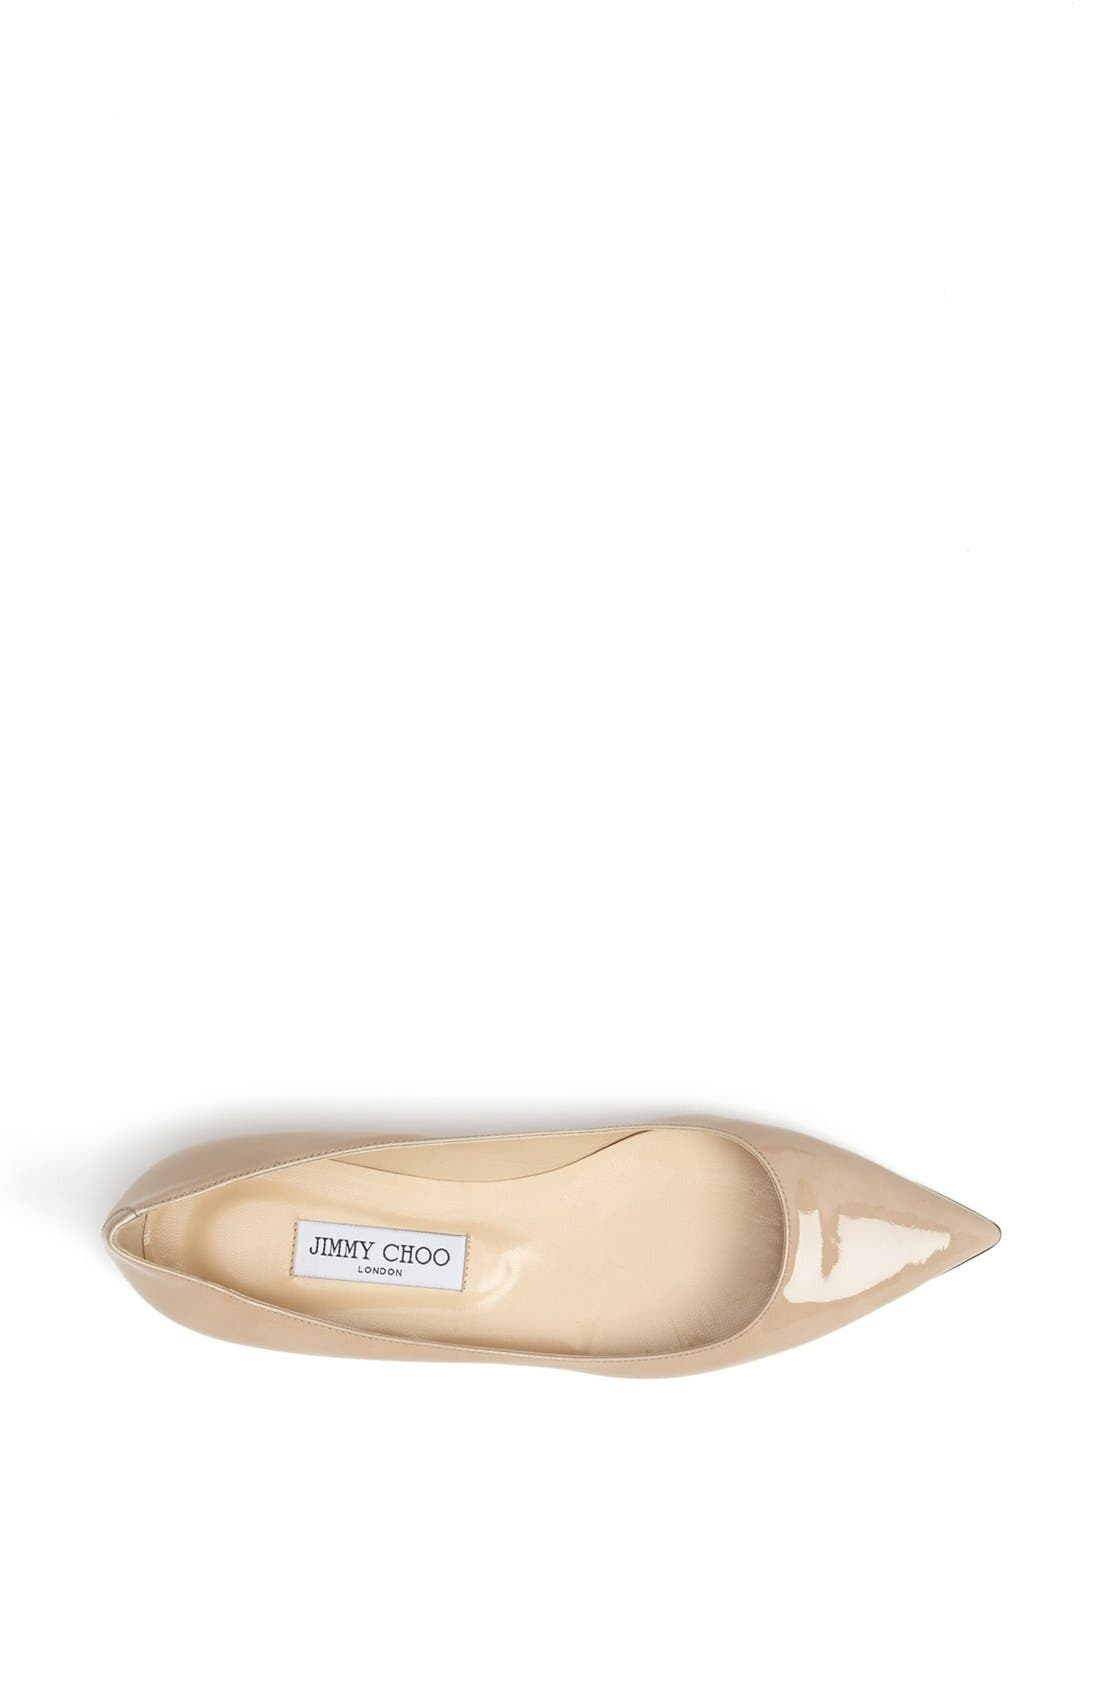 Alternate Image 3  - Jimmy Choo 'Alina' Pointy Toe Flat (Women)